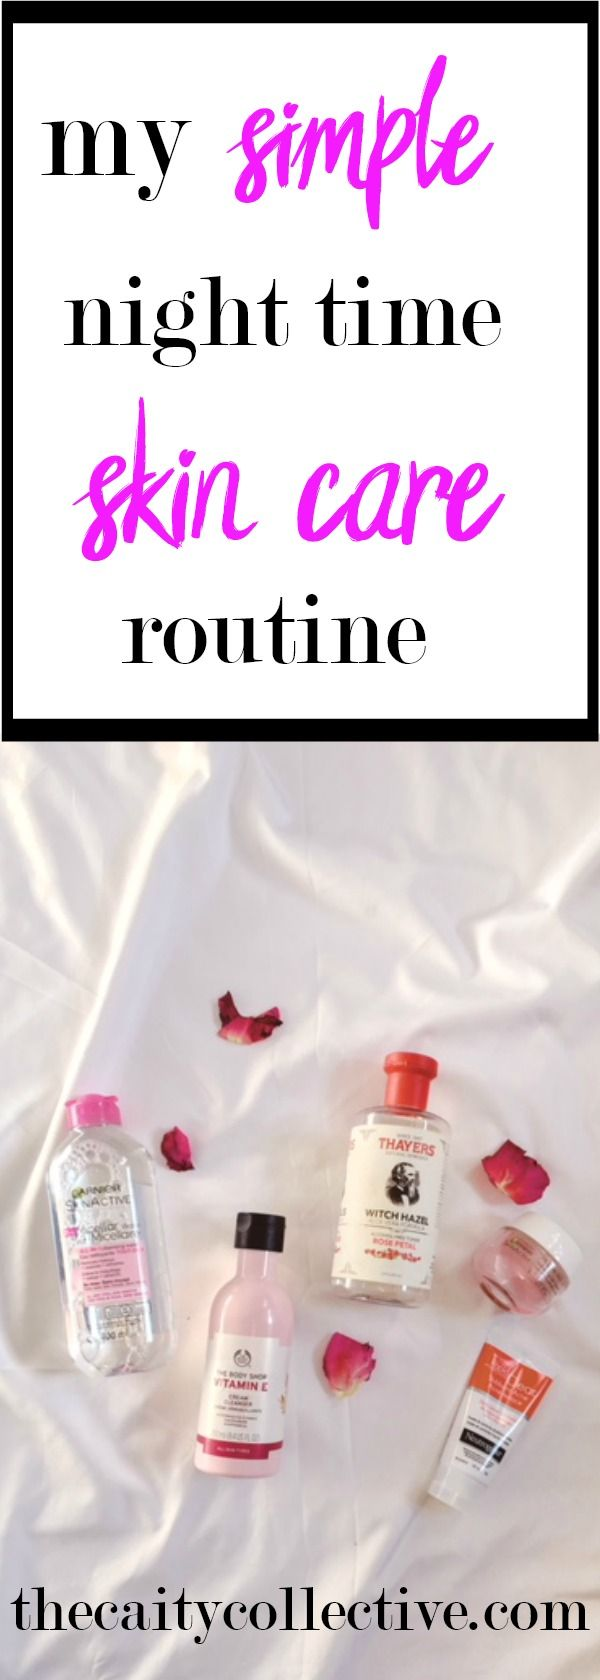 Skin care routine | order to apply skin care products | drugstore skin care products | night time skin care routine | pm skin care routine